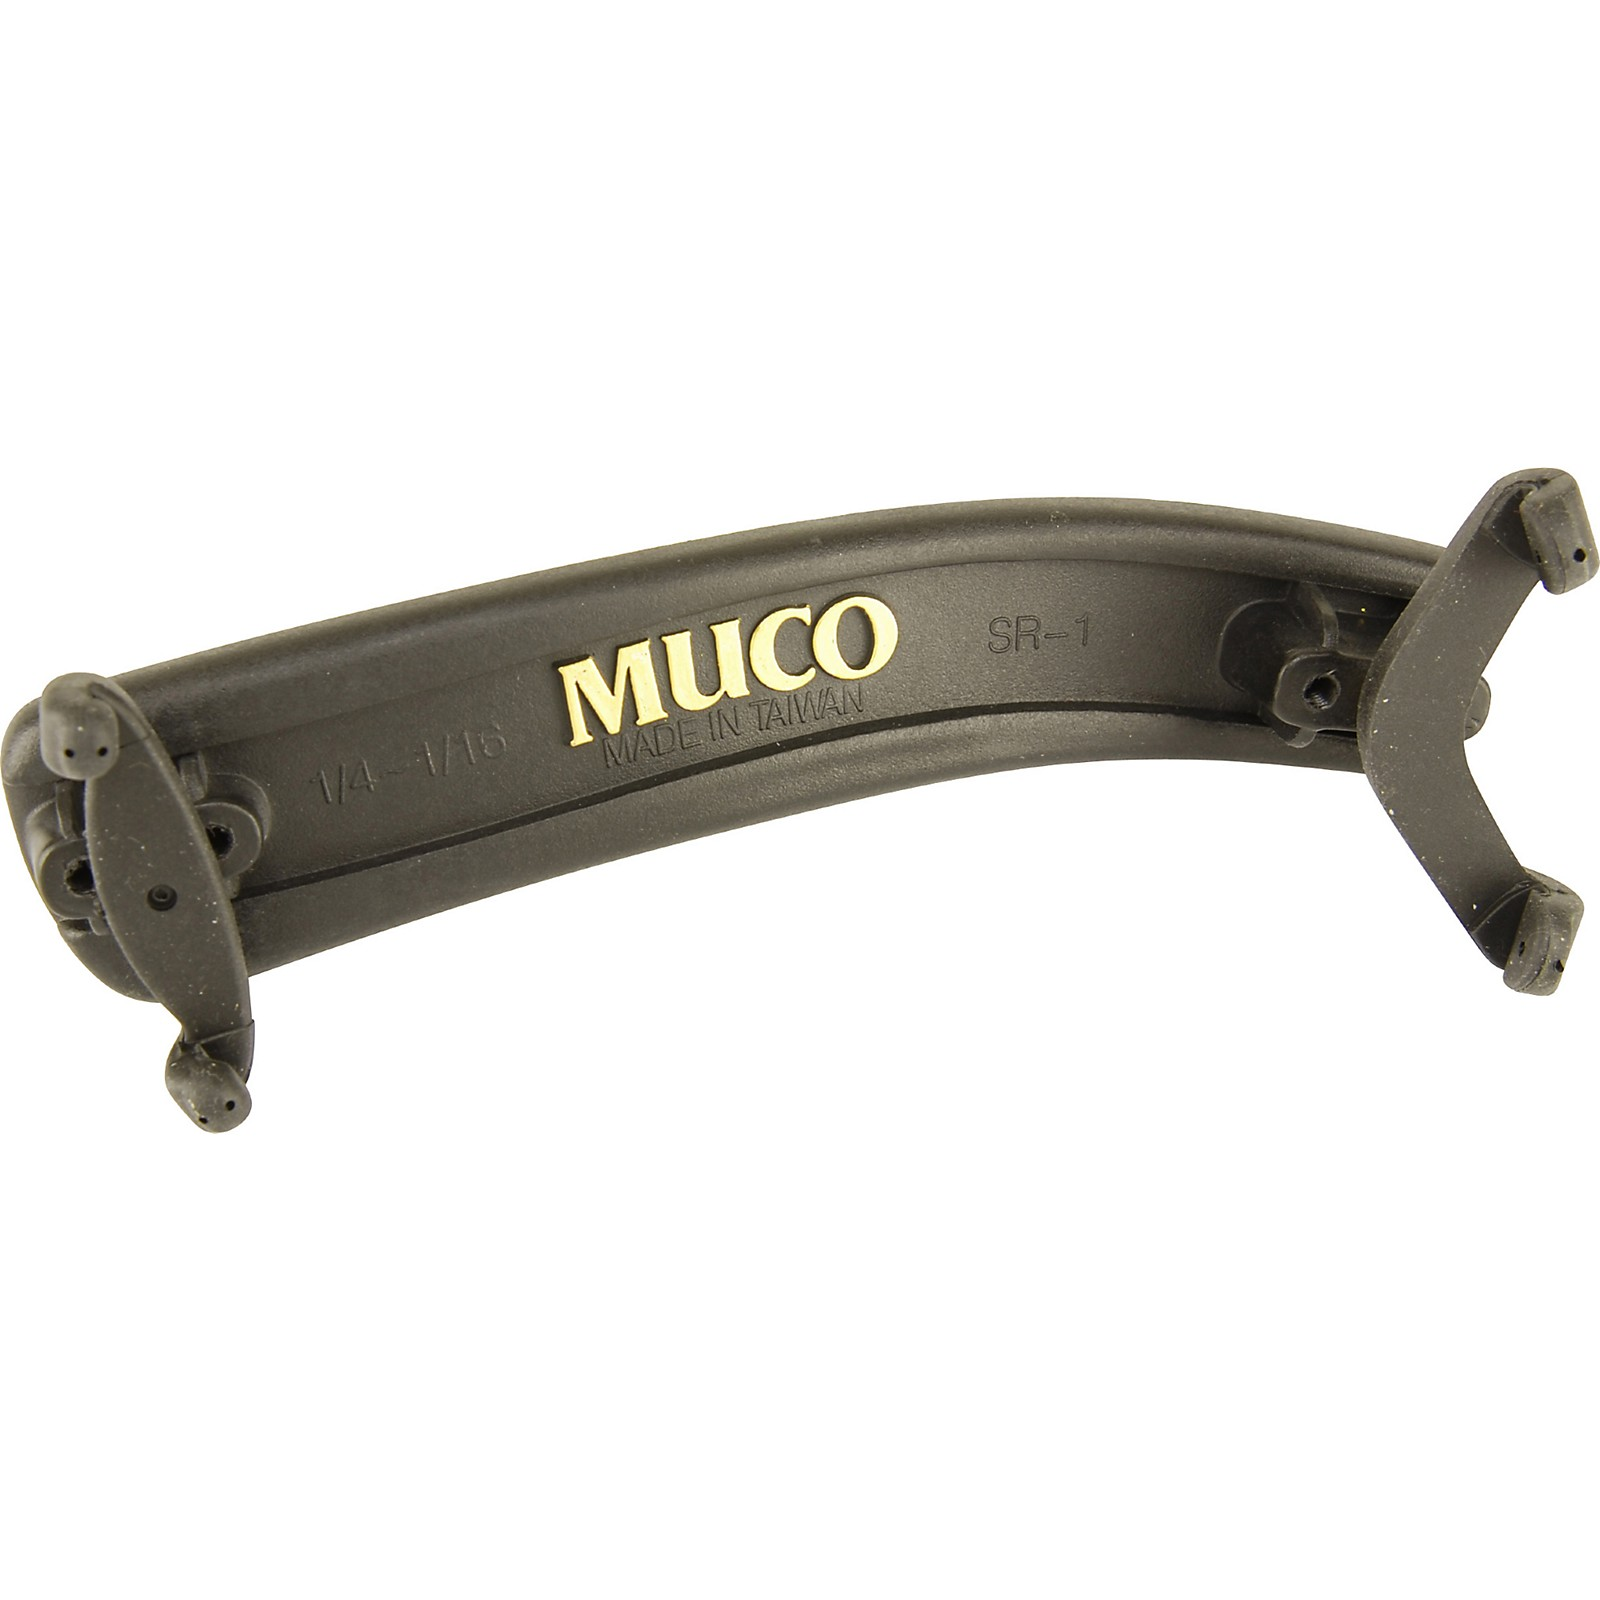 Open Box MUCO Muco Easy model shoulder rest